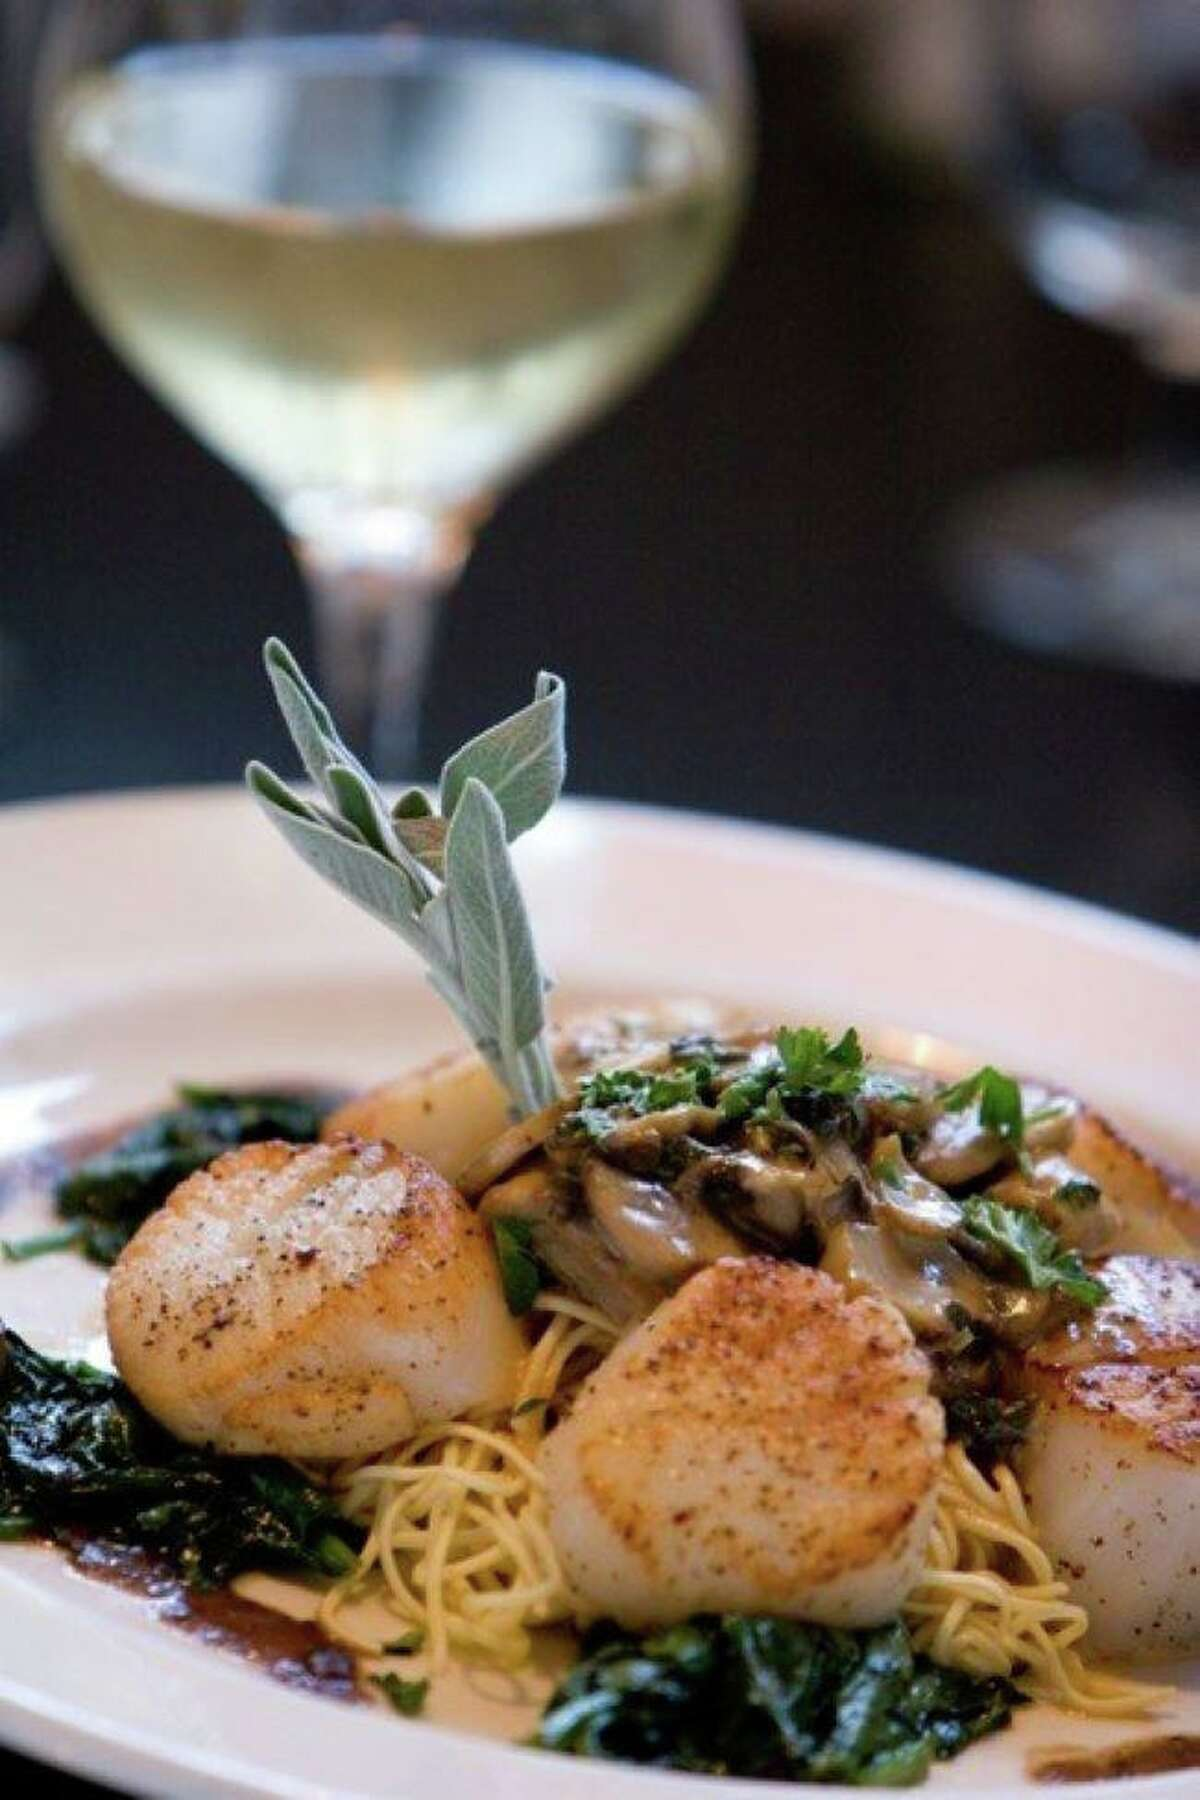 Two Steps Downtown Grille in Danbury is presenting a return to Ciao! Cafe. For a limited time, it will recreate items from its restaurant that was a Danbury landmark for two decades. Fresh Sea Scallops - over angel hair with mushrooms in a madeira cream sauce, is seen here.